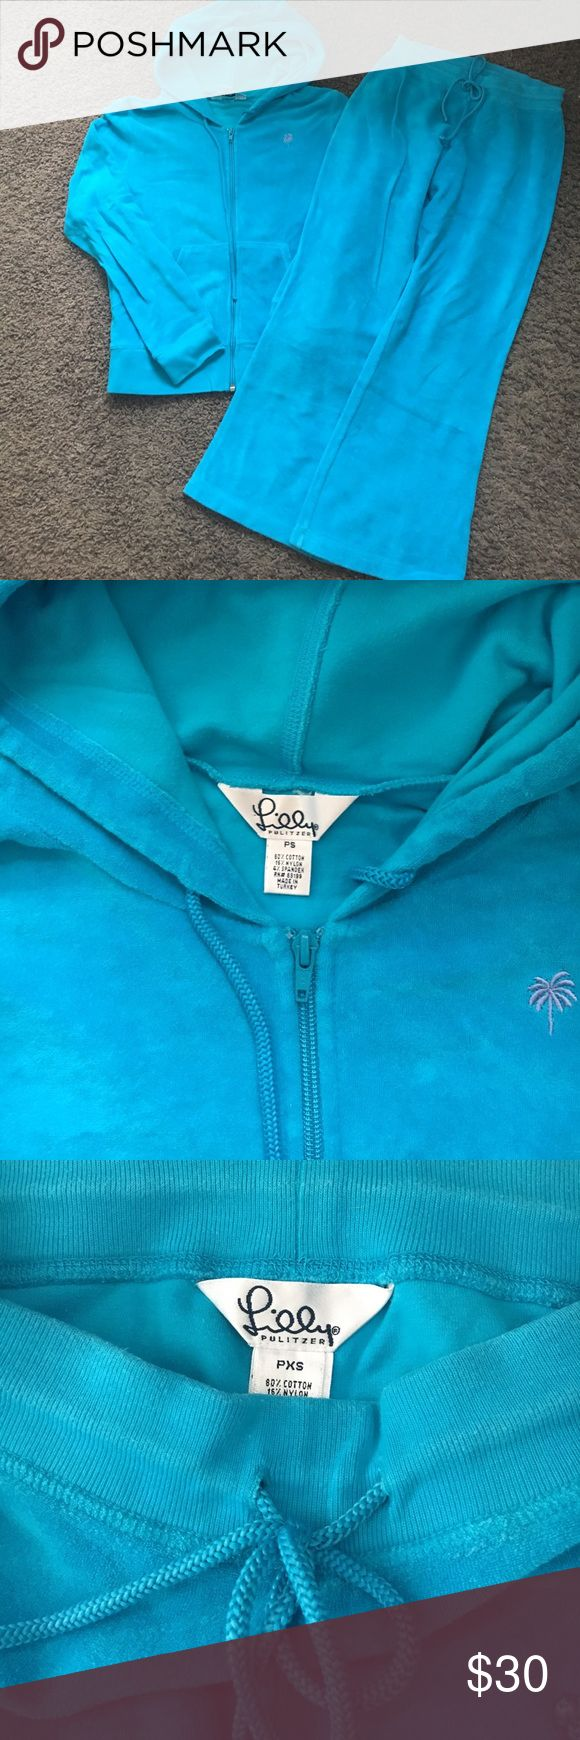 Lilly Pulitzer terrycloth hoodie and cropped pants Lightly worn Lilly Pulitzer turquoise terrycloth zip up hoodie size petite small and cropped pants size petite XS. Lilly Pulitzer Pants Track Pants & Joggers